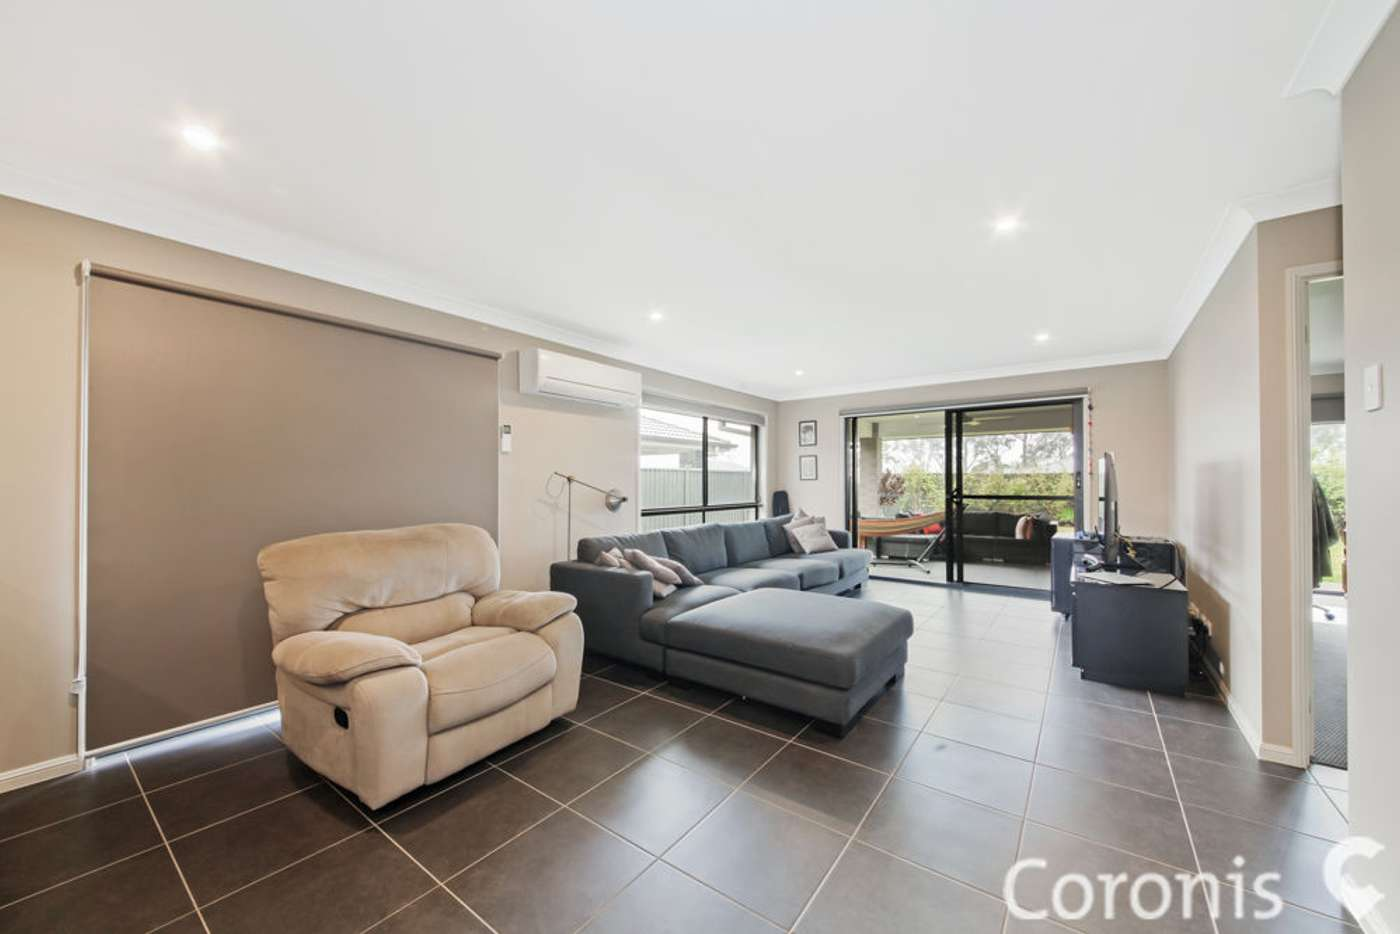 Sixth view of Homely house listing, 34 Riverside Circuit, Joyner QLD 4500